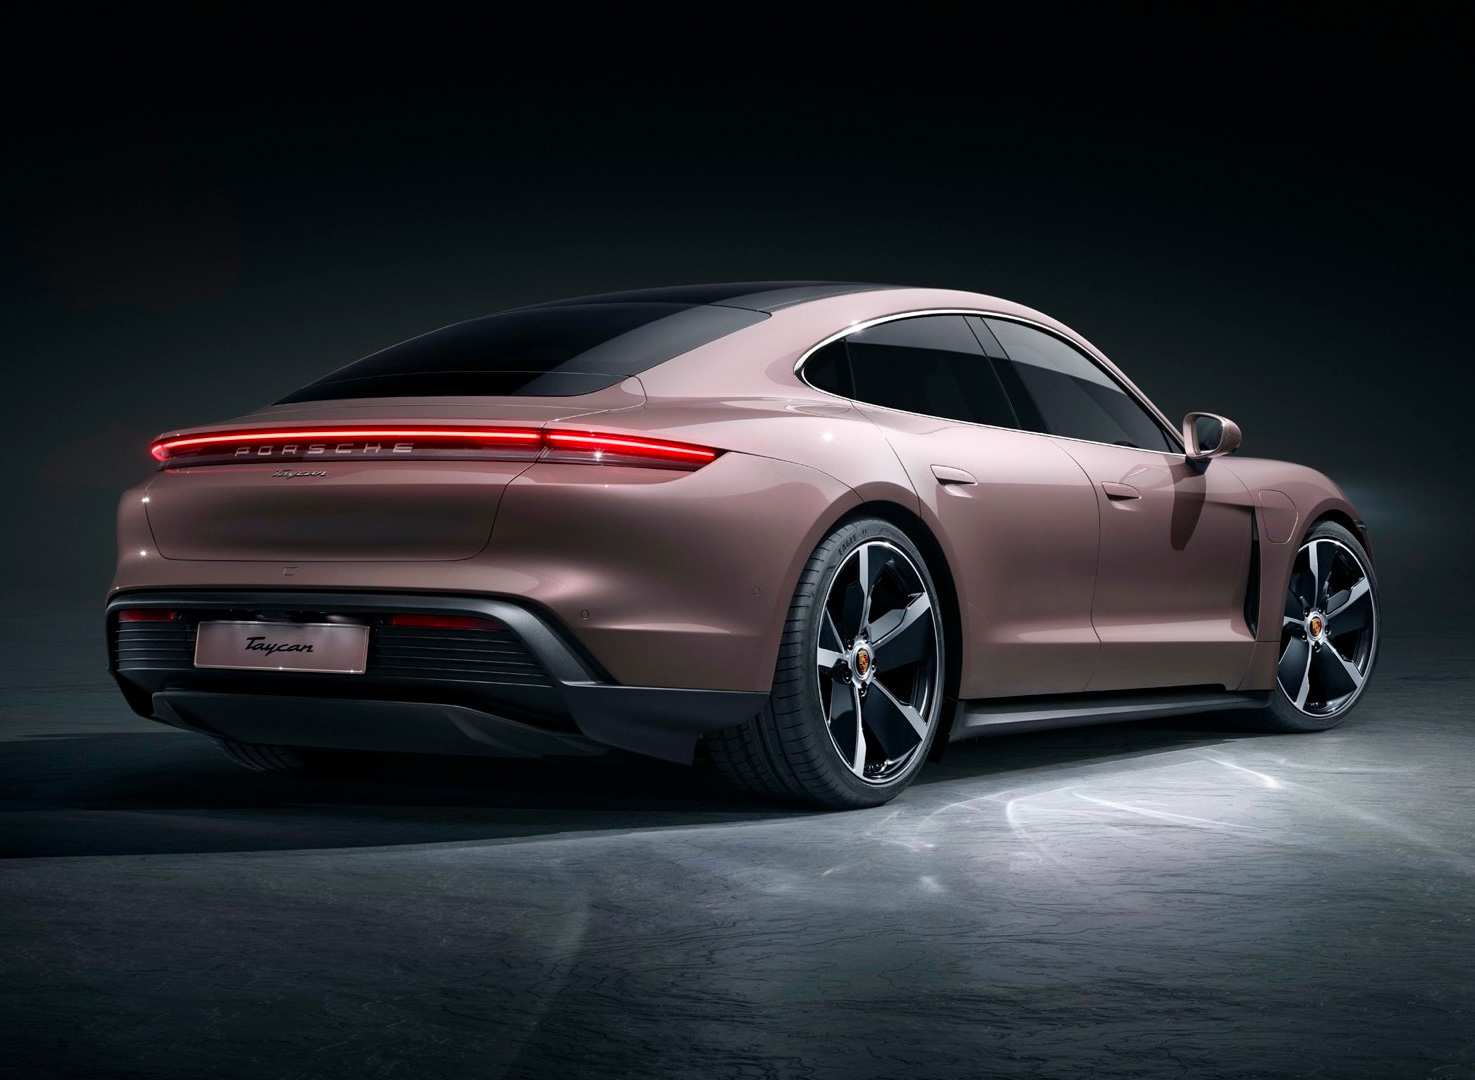 For 2021 Porsche Rolls Out Lighter, Leaner Taycan at werd.com